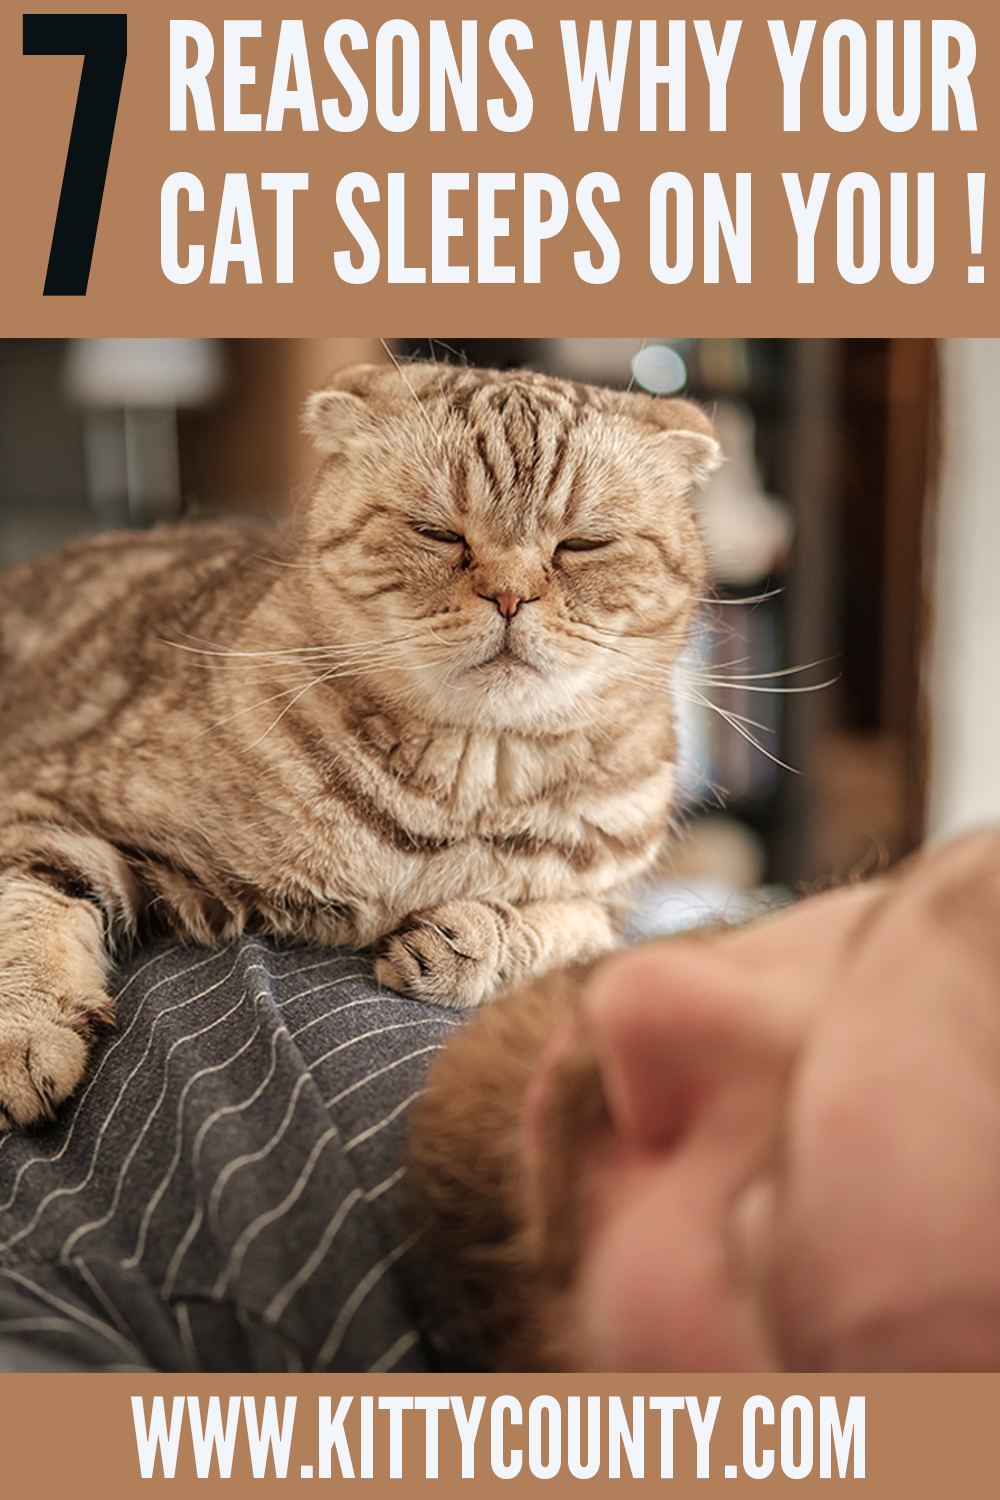 Why Does My Cat Sleep With Me Here Are The 7 Reasons Kitty County In 2020 Cat Sleeping Cats Cute Cats Photos